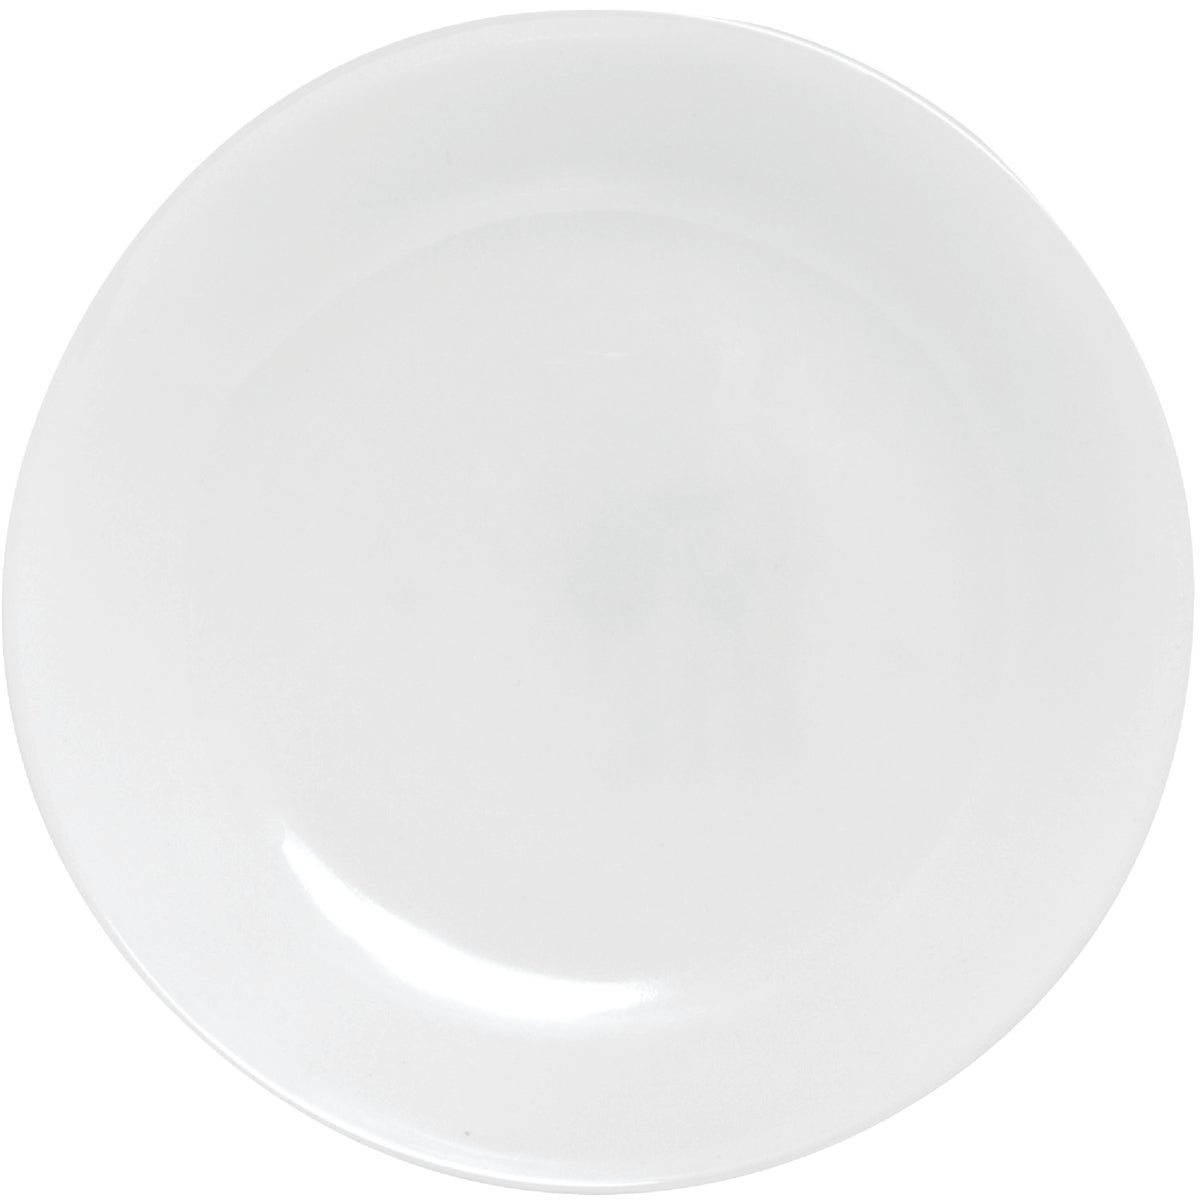 WHITE LUNCHEON PLATE - 6003880 by World Kitchen